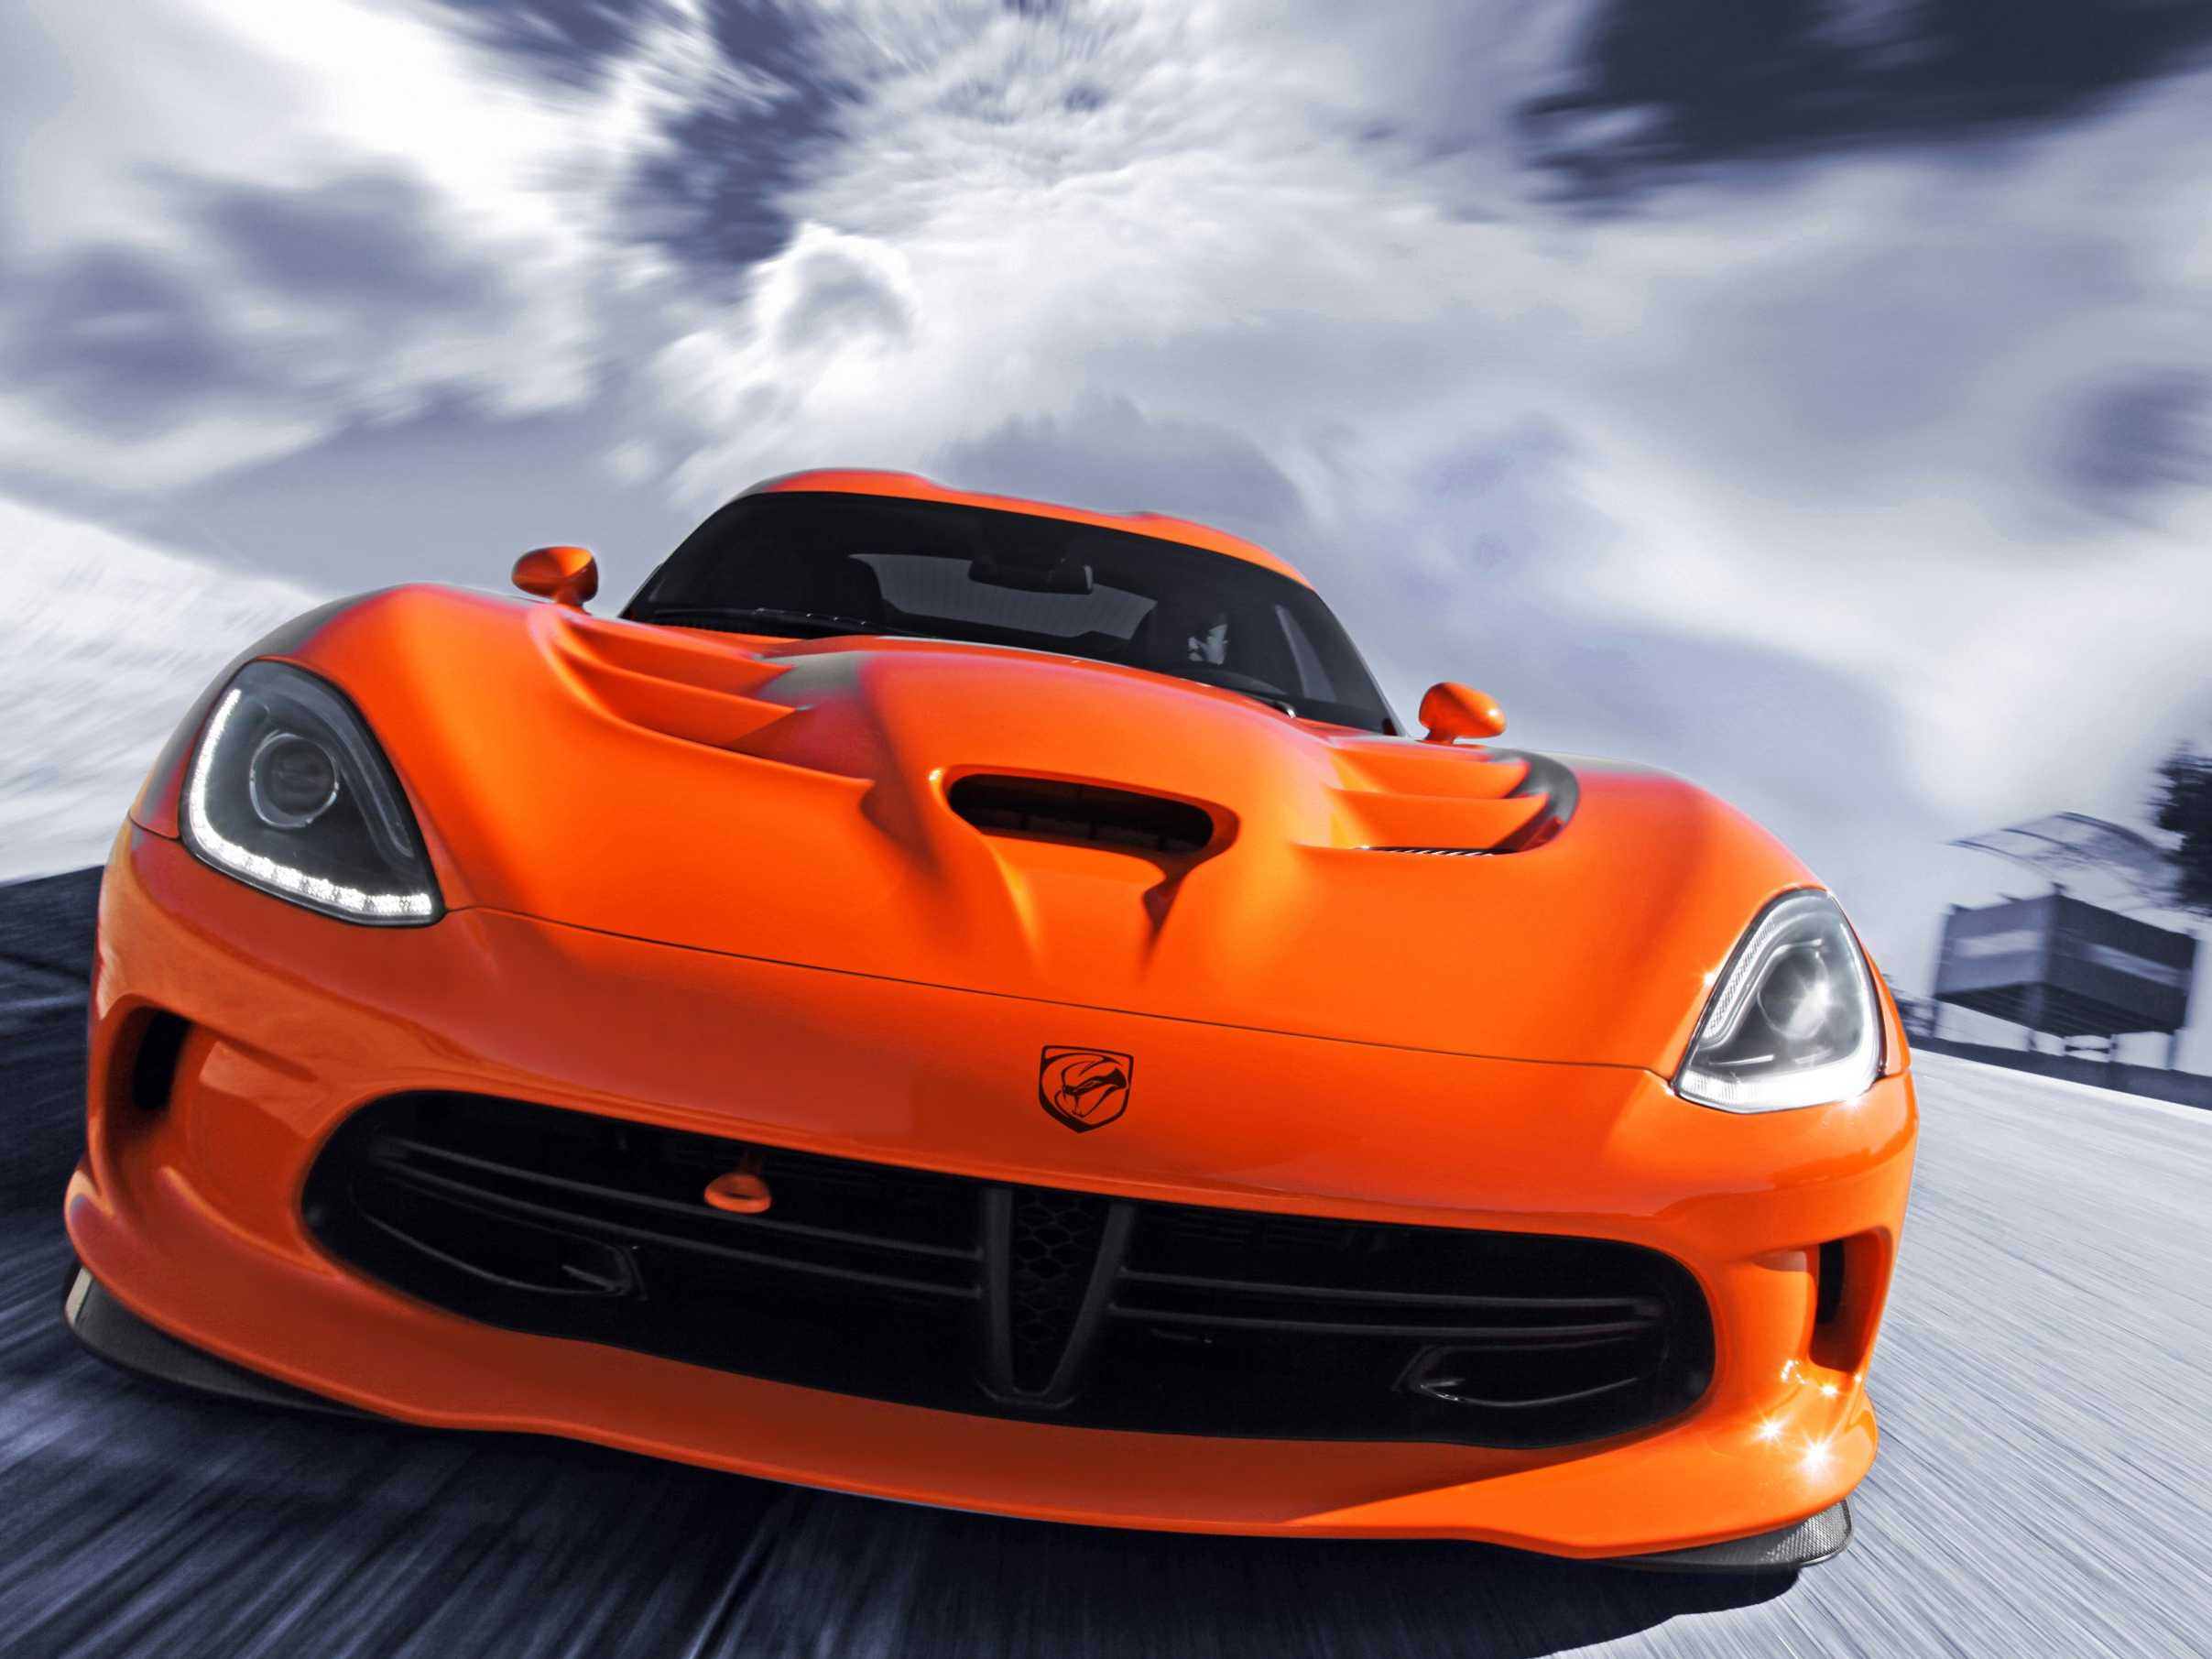 2014 Srt Viper Ta Car Wallpaper Hd Wallpapers